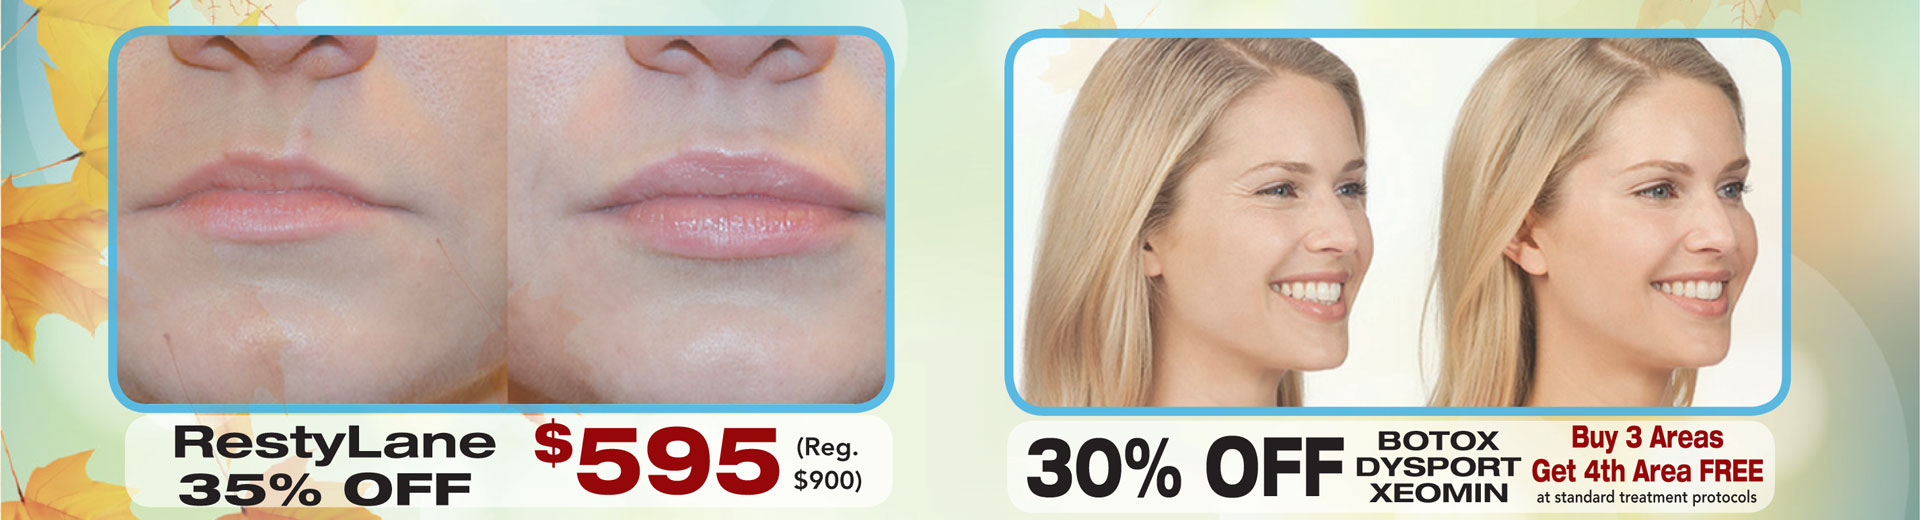 RestyLane 35% Off